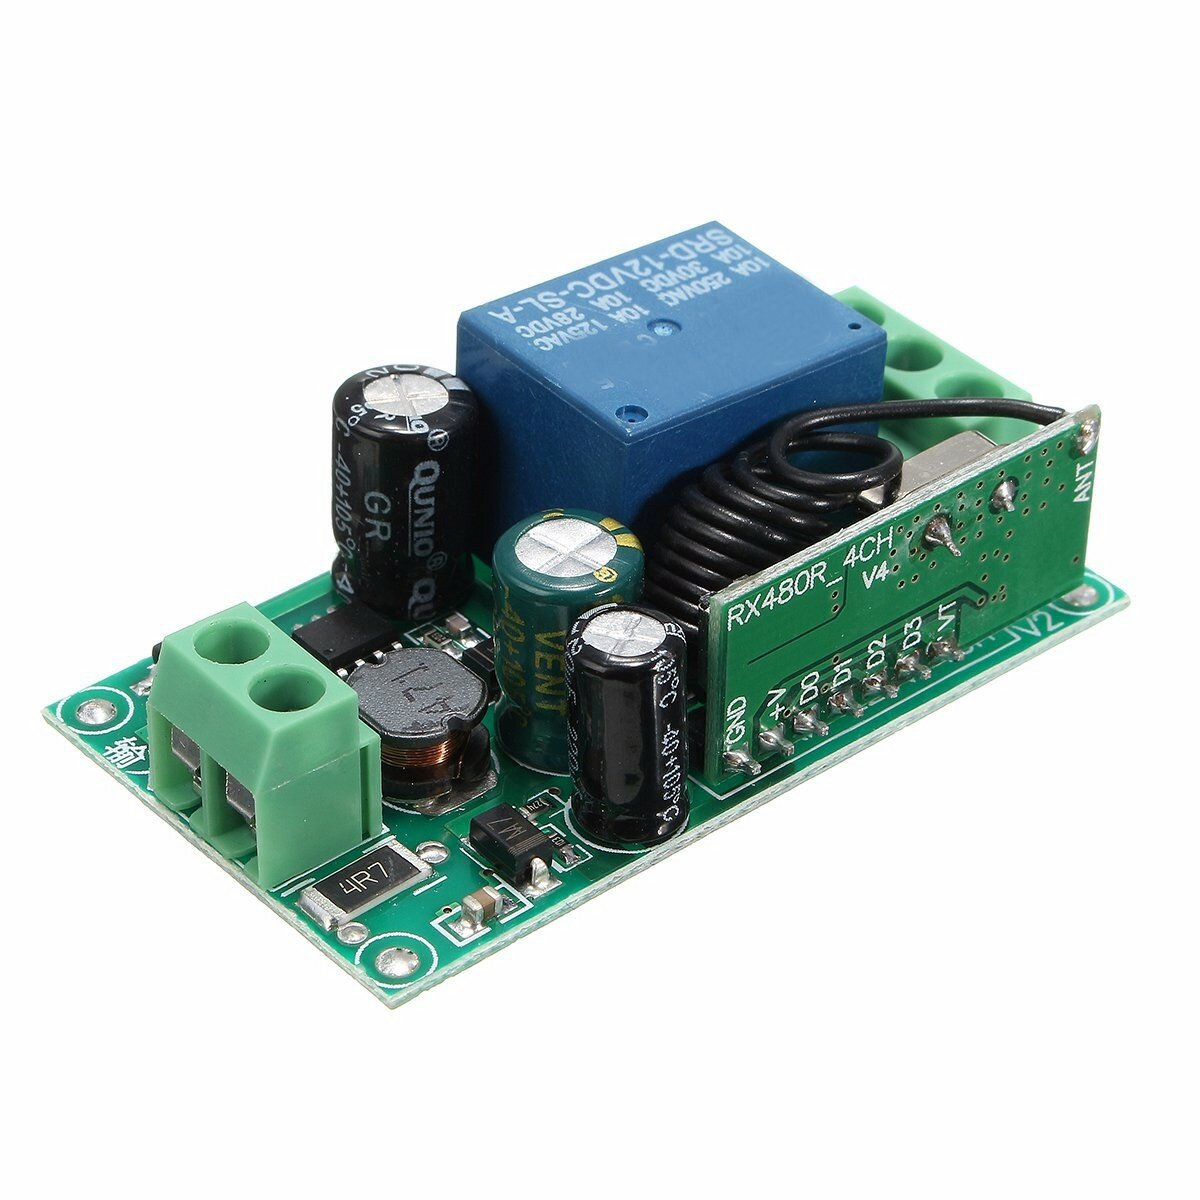 315mhz 433mhz 220v 10a 1ch Channel Wireless Relay Remote Control On And Off The It Self Is Turning A 220vac Circuit Switch Receiver